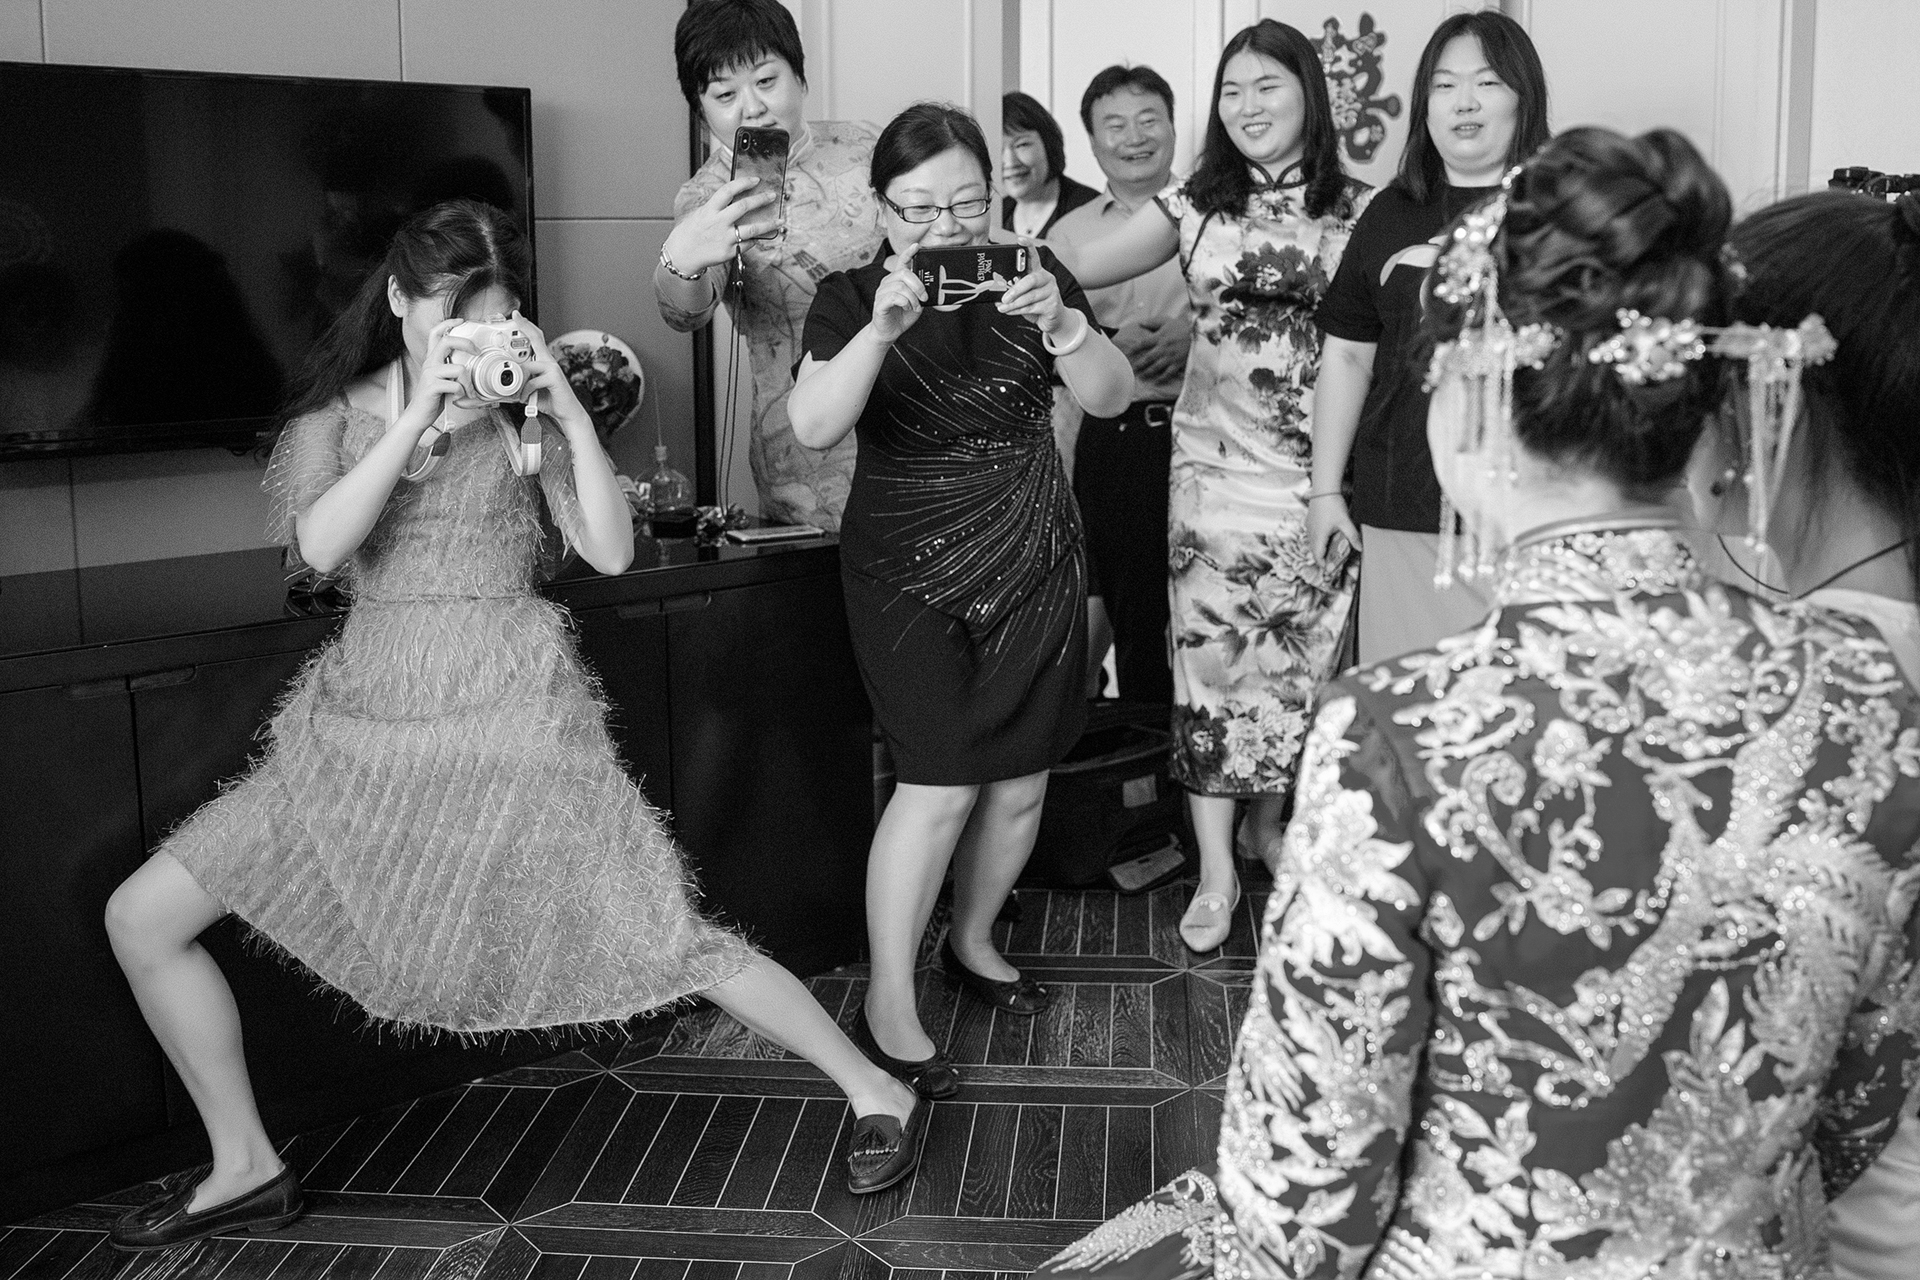 A black and white wedding photojournalism image of bride having her picture taken by a friend